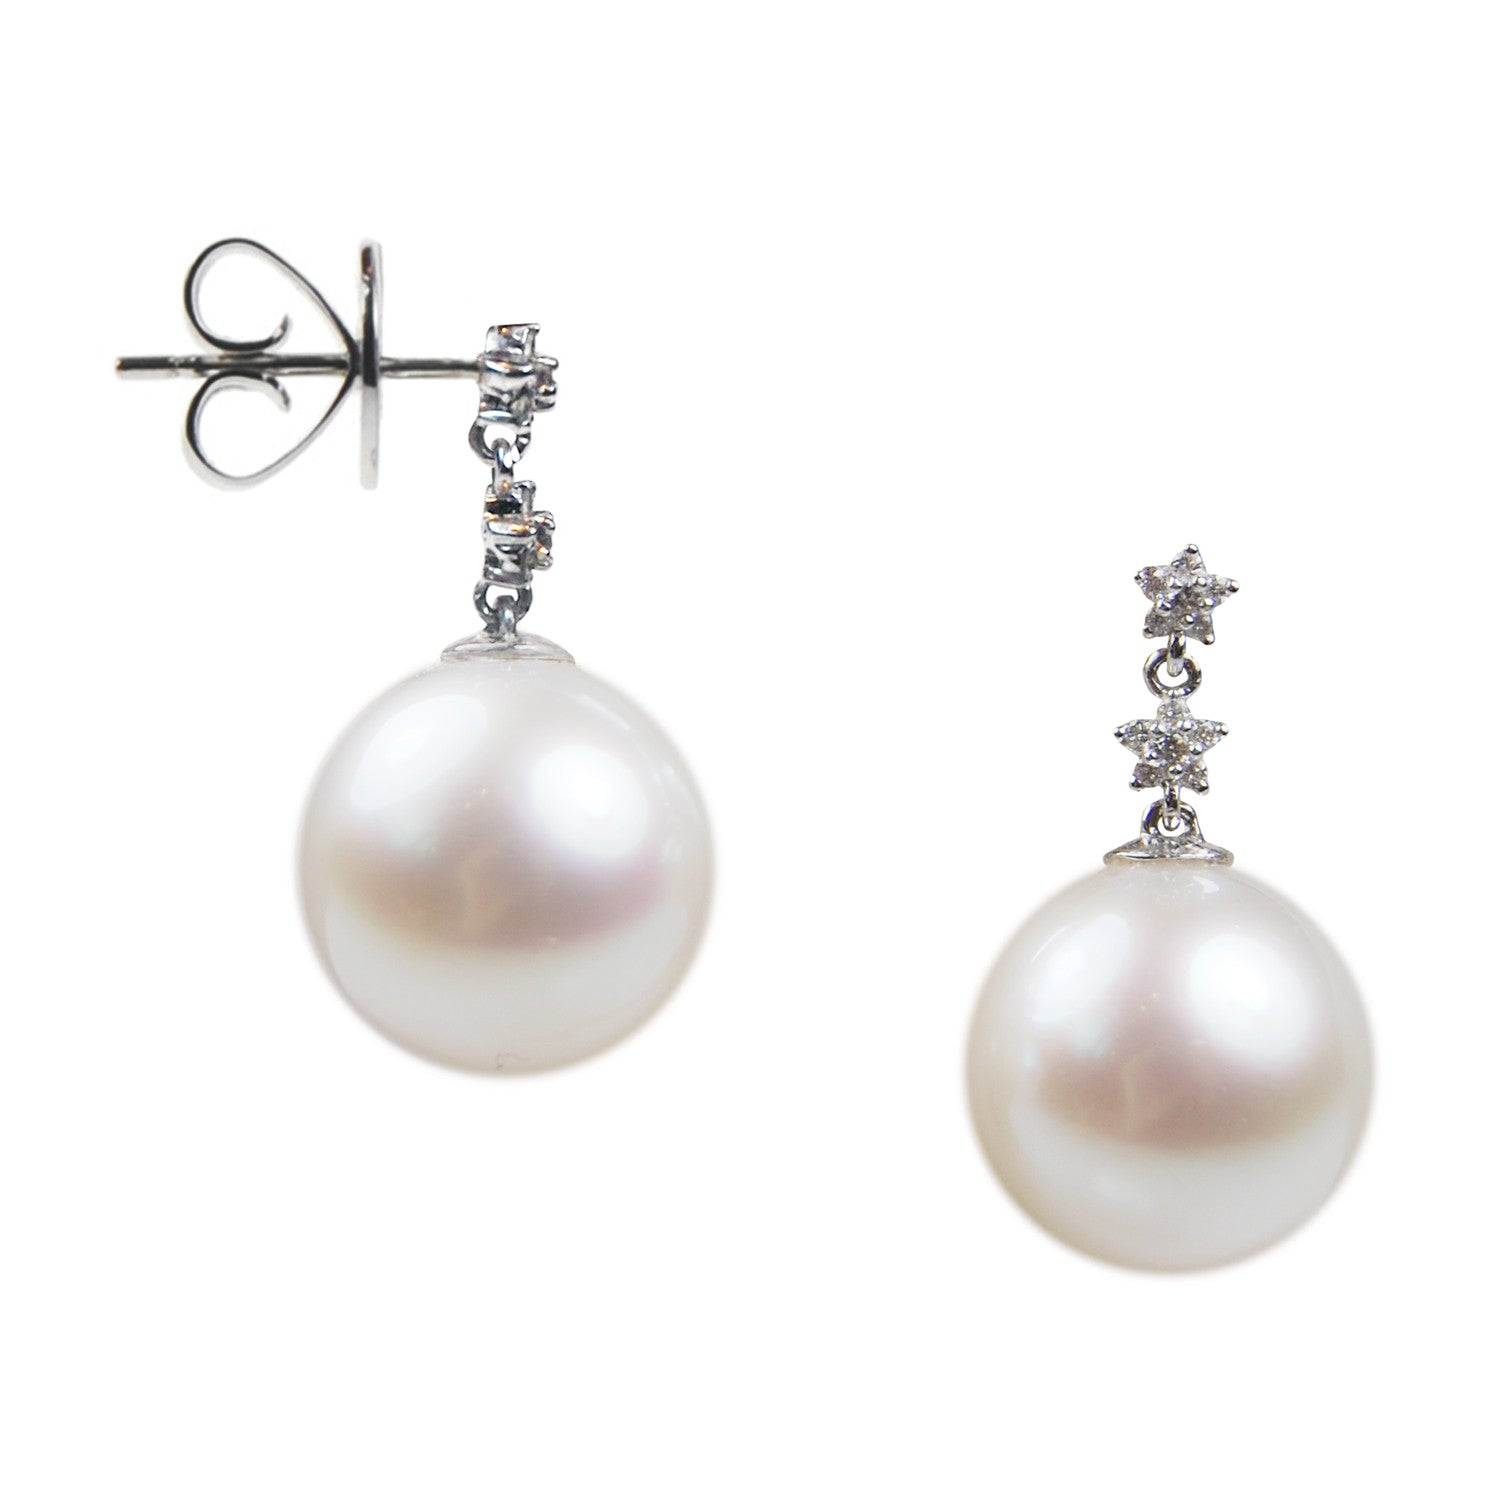 Diamond Star Earrings with South Sea Pearl Drops